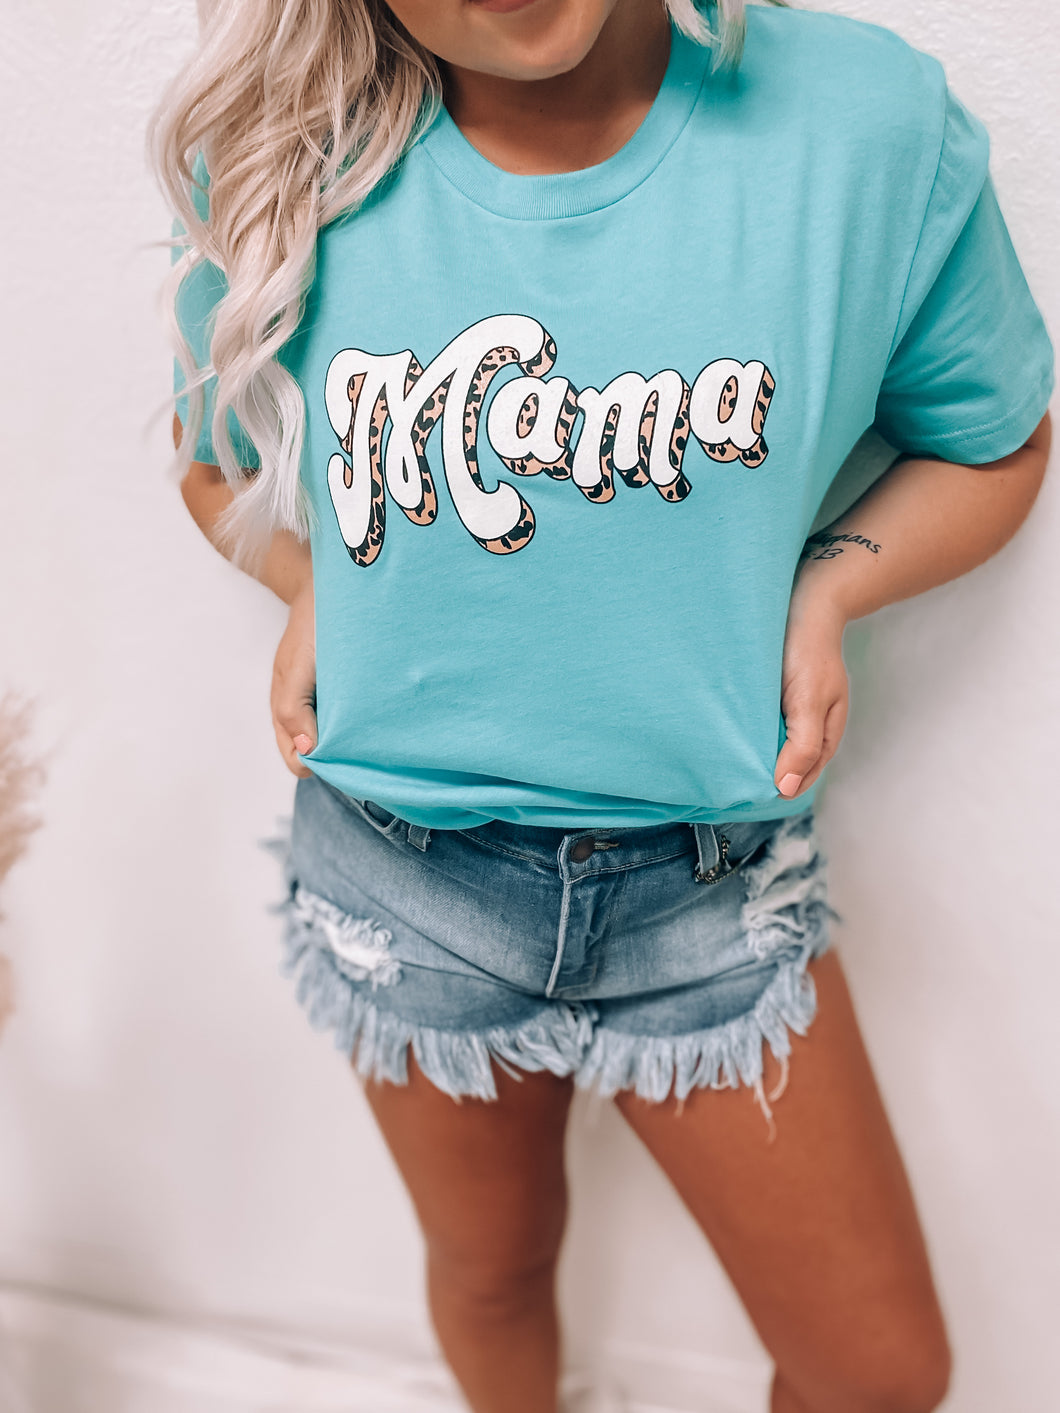 MAMA LEOPARD TEE-Shirt-Apparel wholesale-Blondie tee, top-The Twisted Chandelier